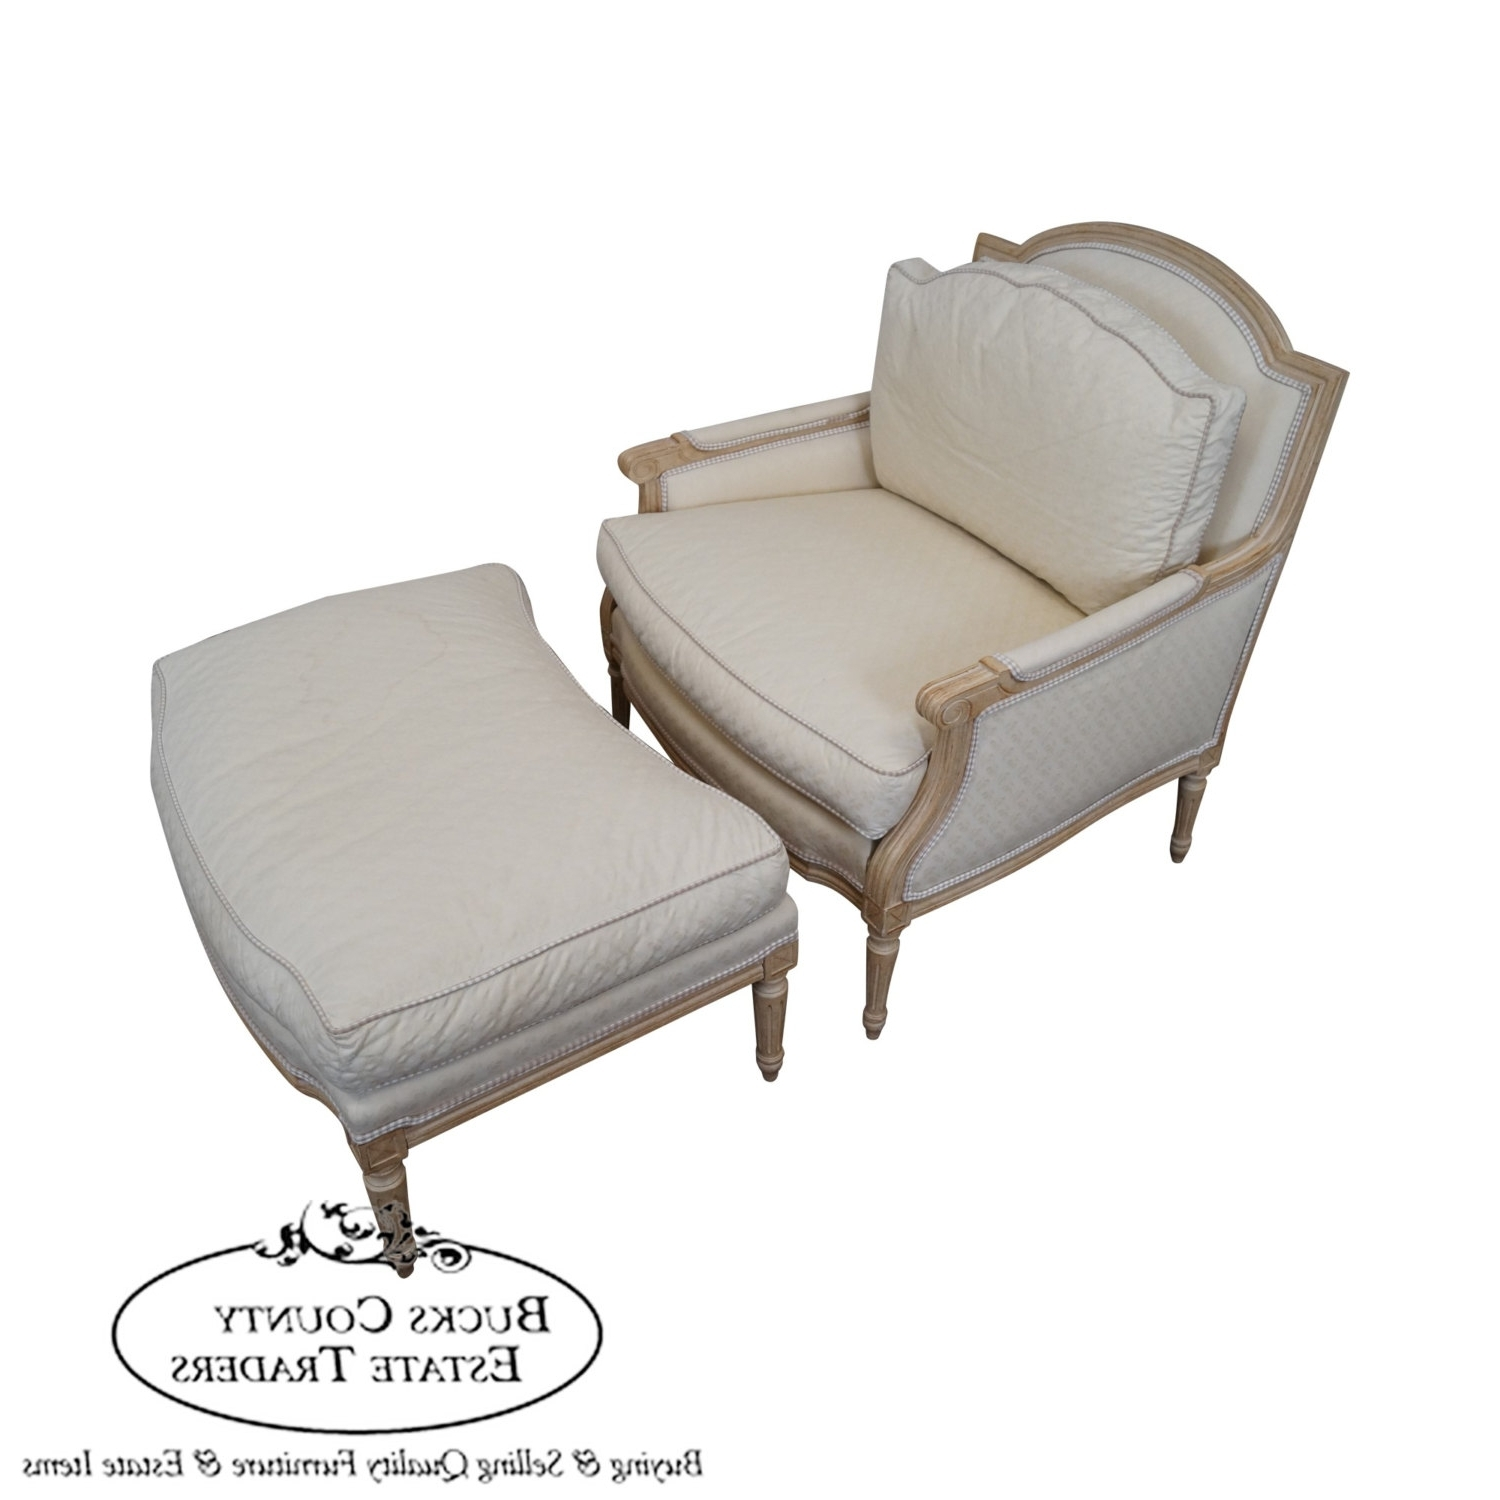 Heirloom Furniture French Louis Xv Style Bergere Chaise Lounge Pertaining To Well Known Chaise Lounge Chairs With Ottoman (View 5 of 15)